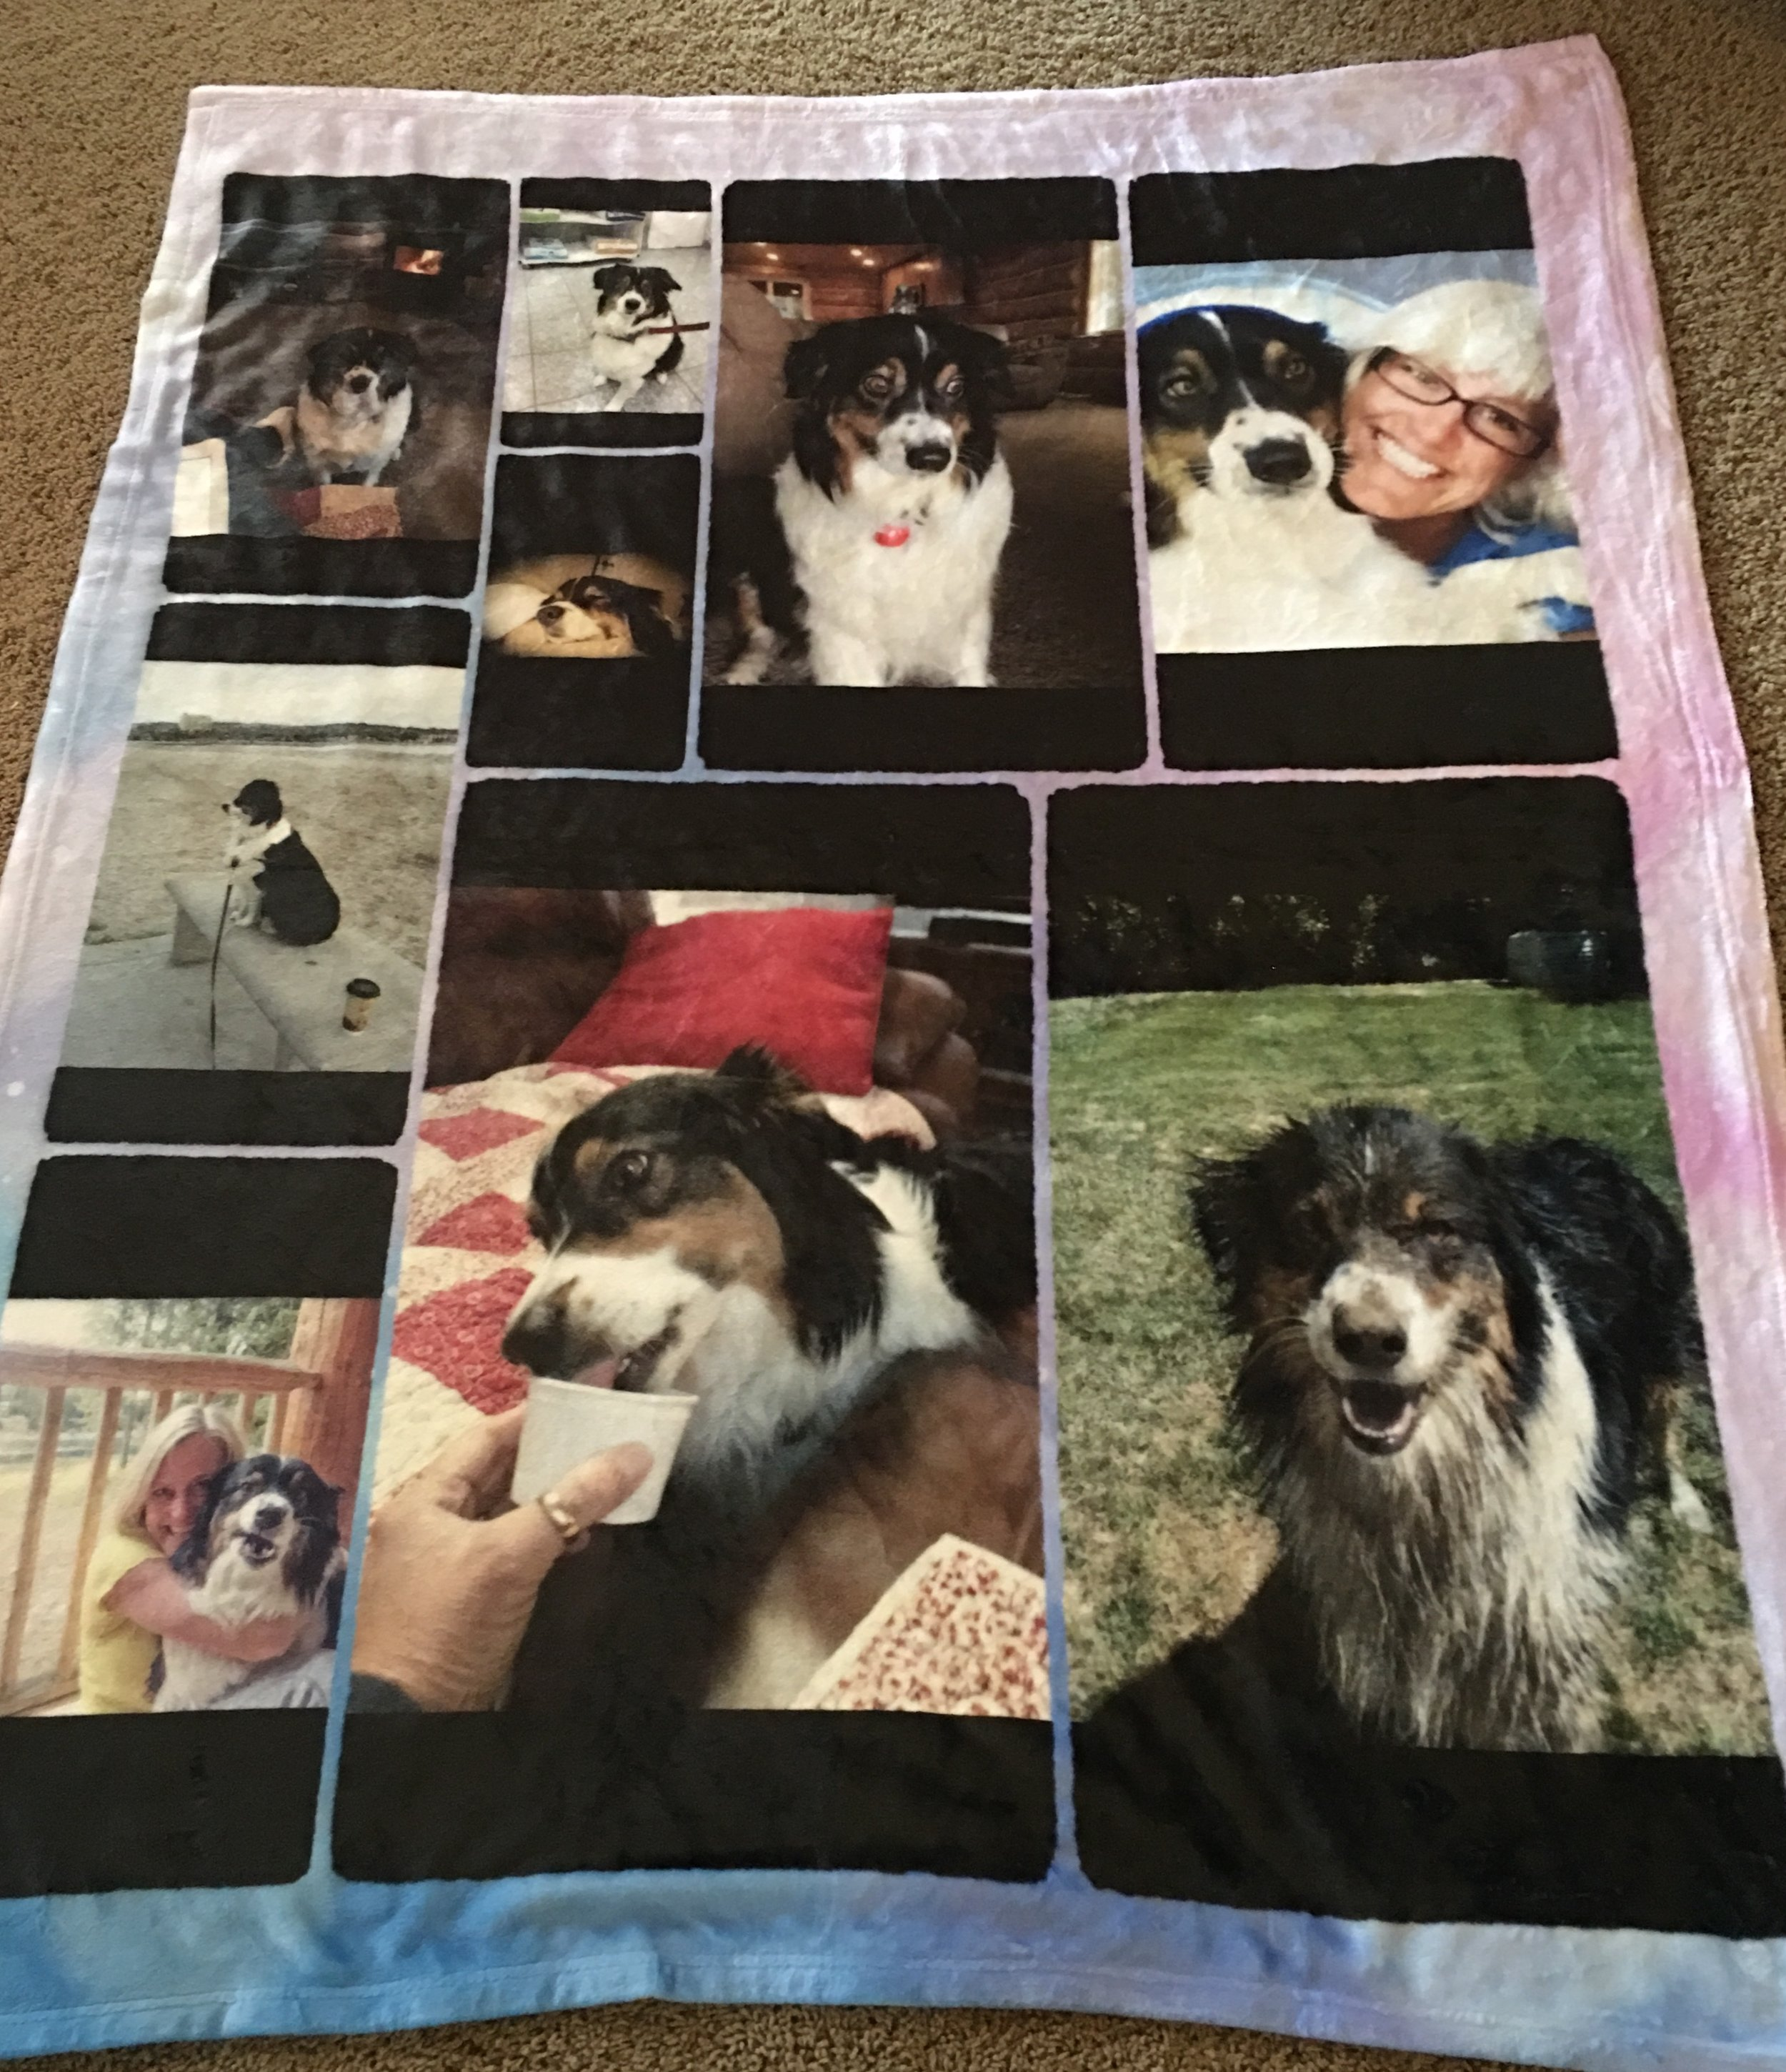 My friend, Kathy had this blanket made for me. Memories of happy times!